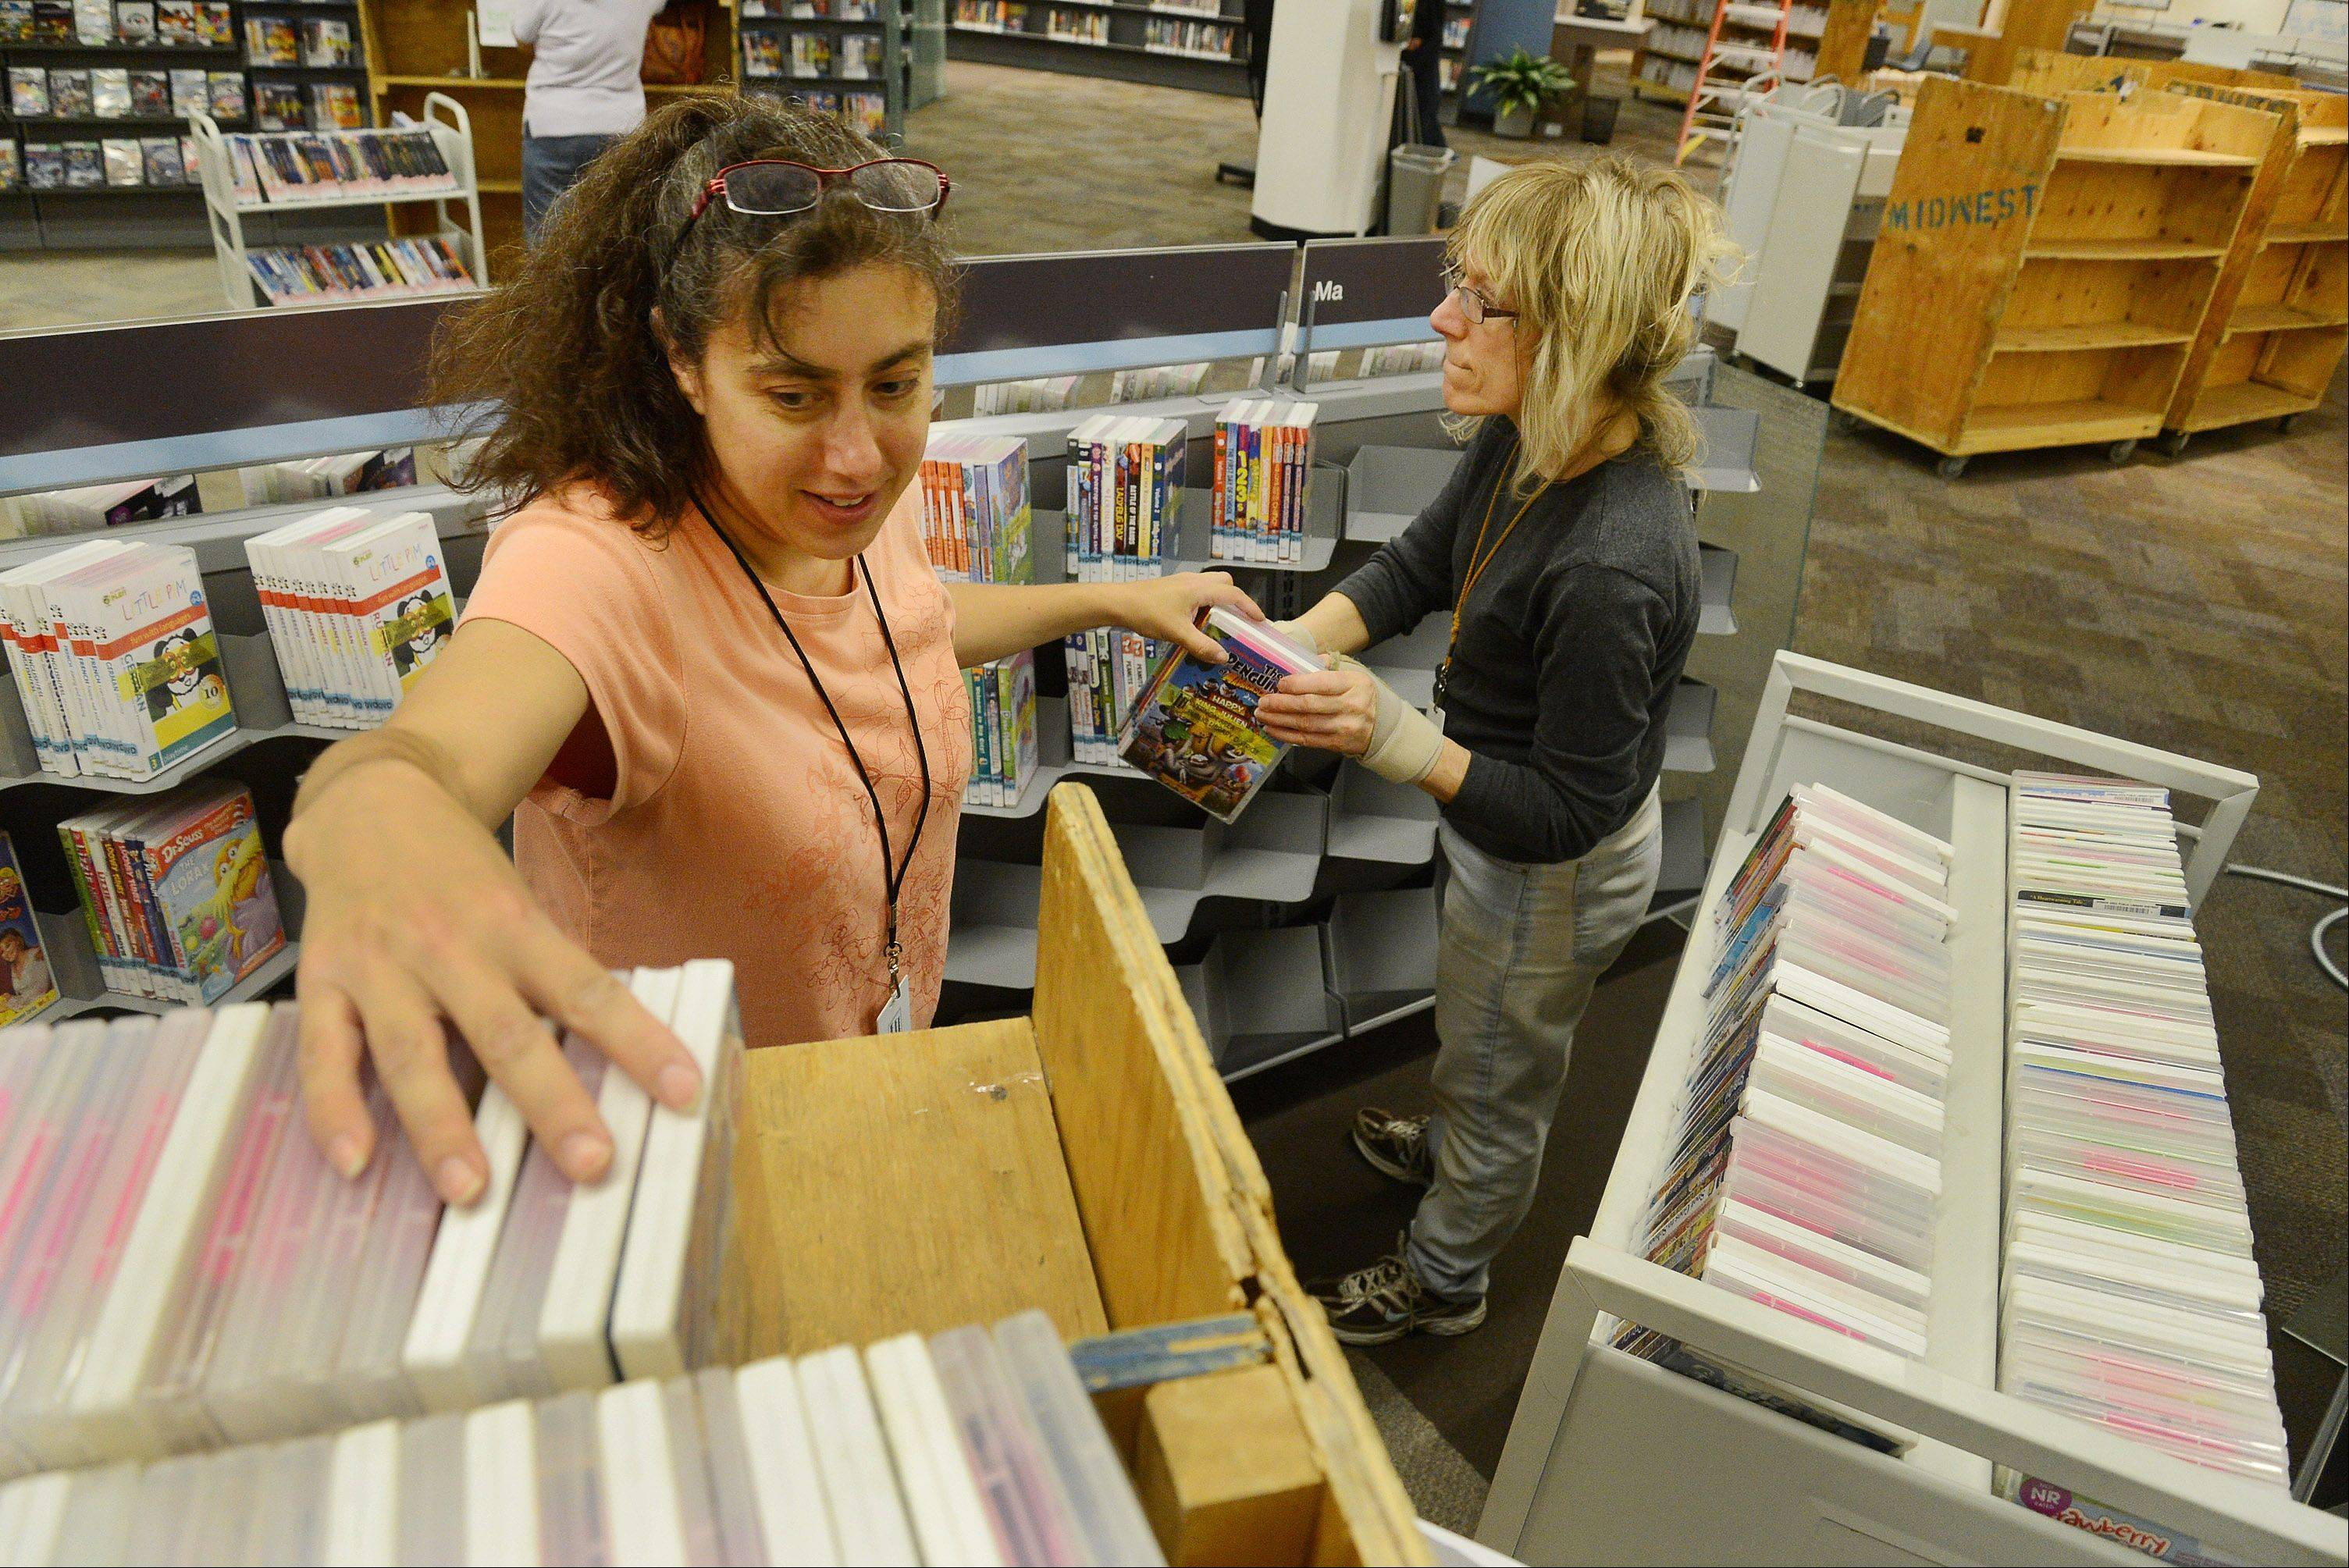 Circulation staff members Donna Wallach, left, and Teri Dobrow stack DVDs on shelves in the newly renovated Vernon Area Library. Roughly 20,000 items needed to be moved in after a $1.3 million renovation.